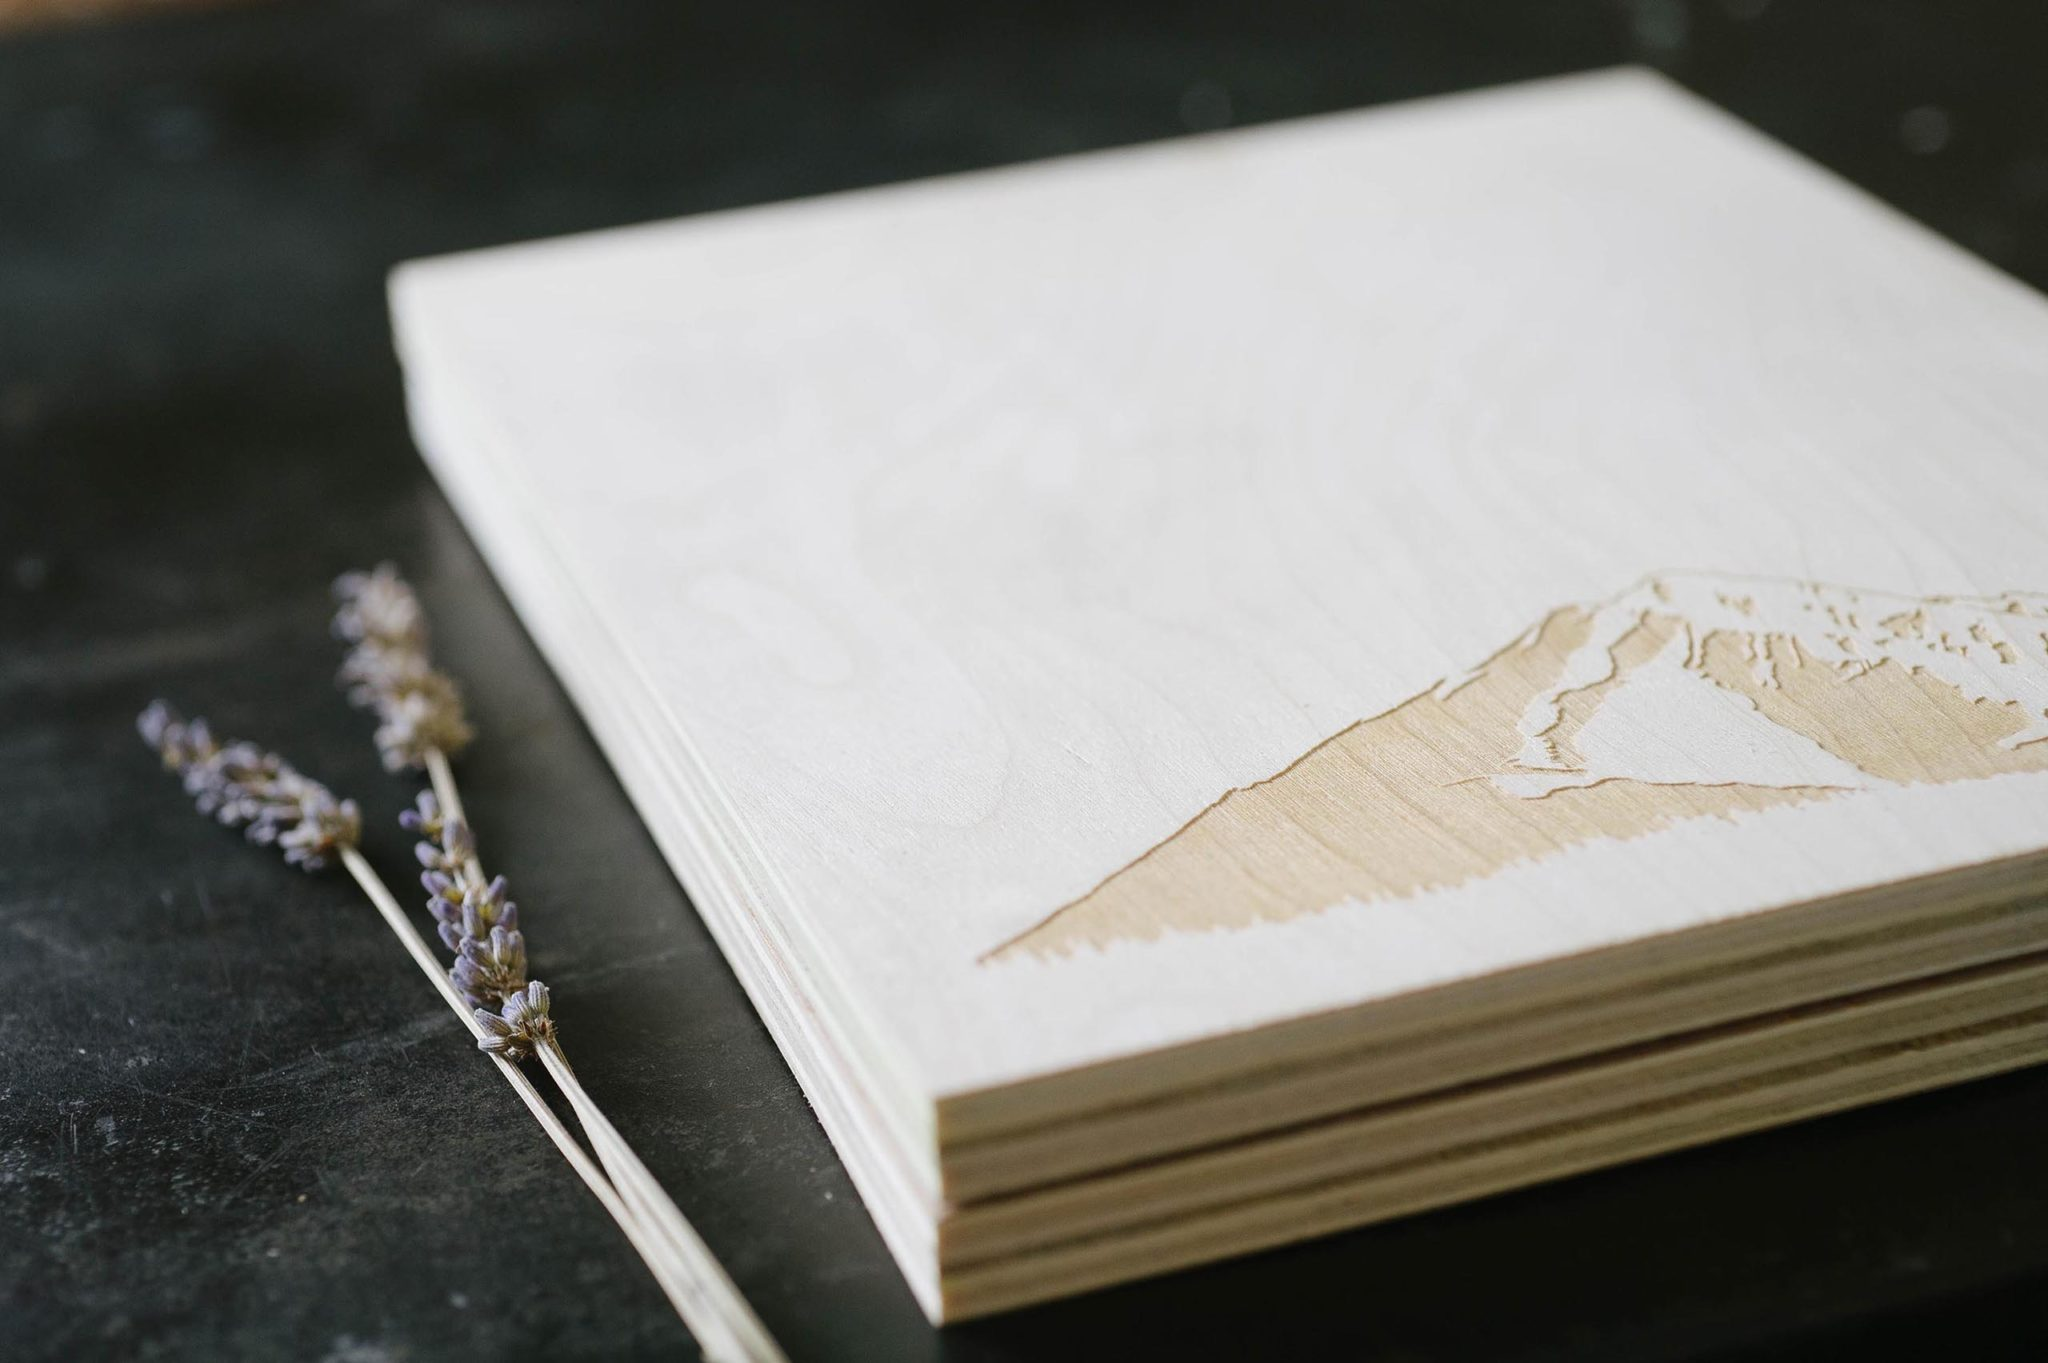 Concrete (screenprinted) and Wood (laser-engraved) Luxury Wedding Invitation from A Fine Press